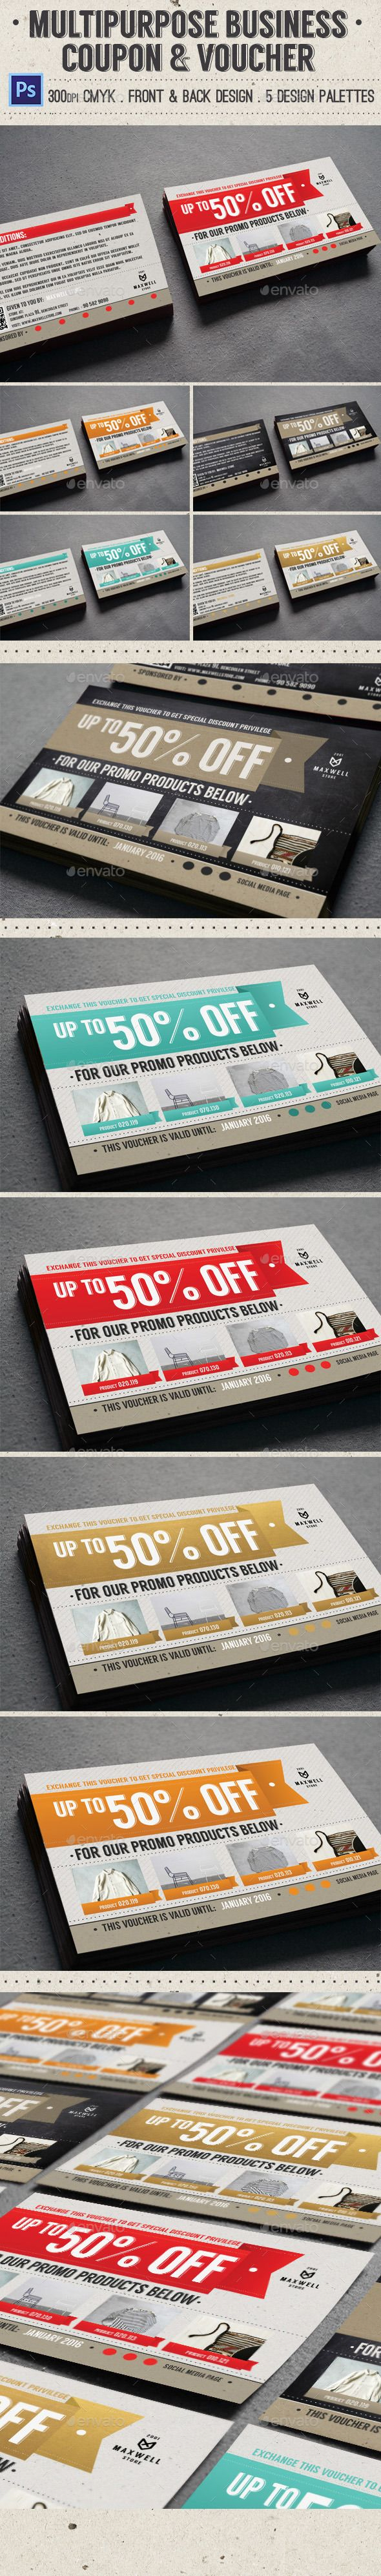 Multipurpose Business Coupon & Voucher - PSD Template • Only ...